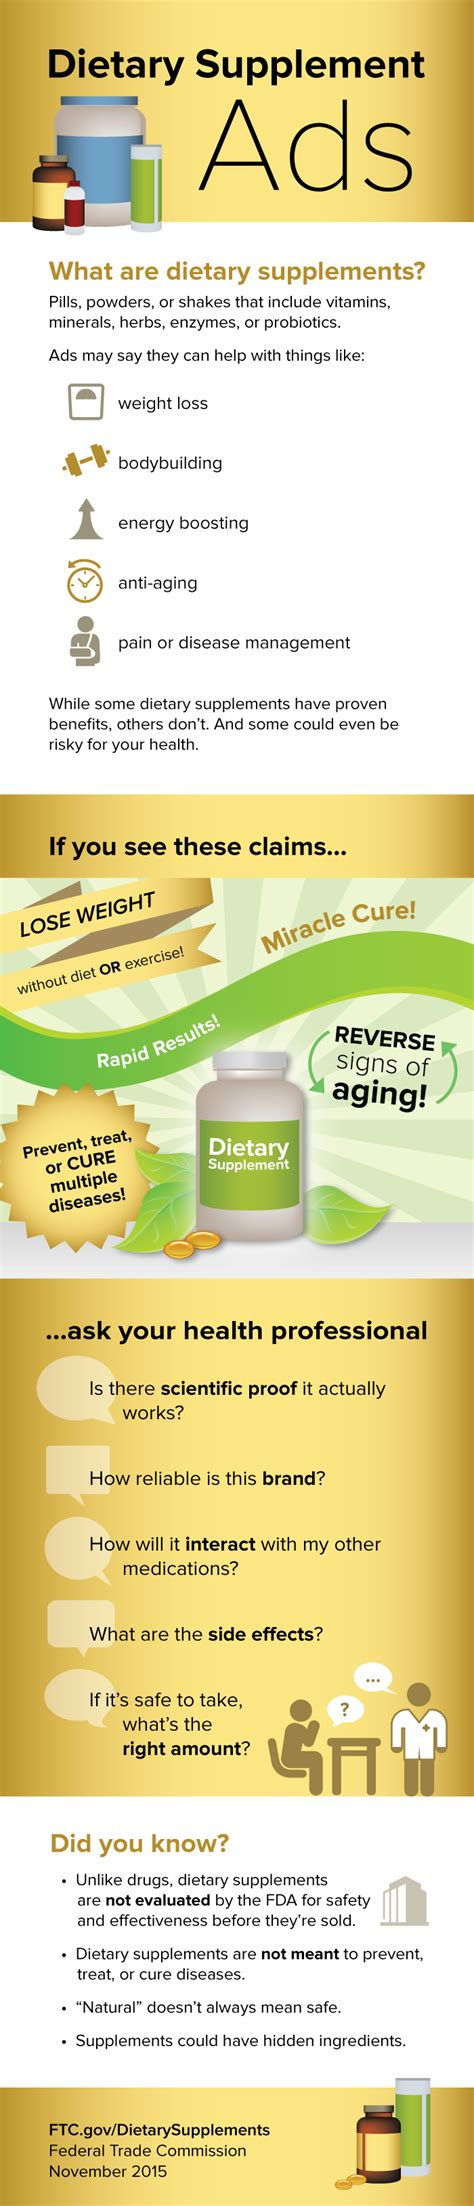 supplement infographic dietary supplement ads infographic consumer information